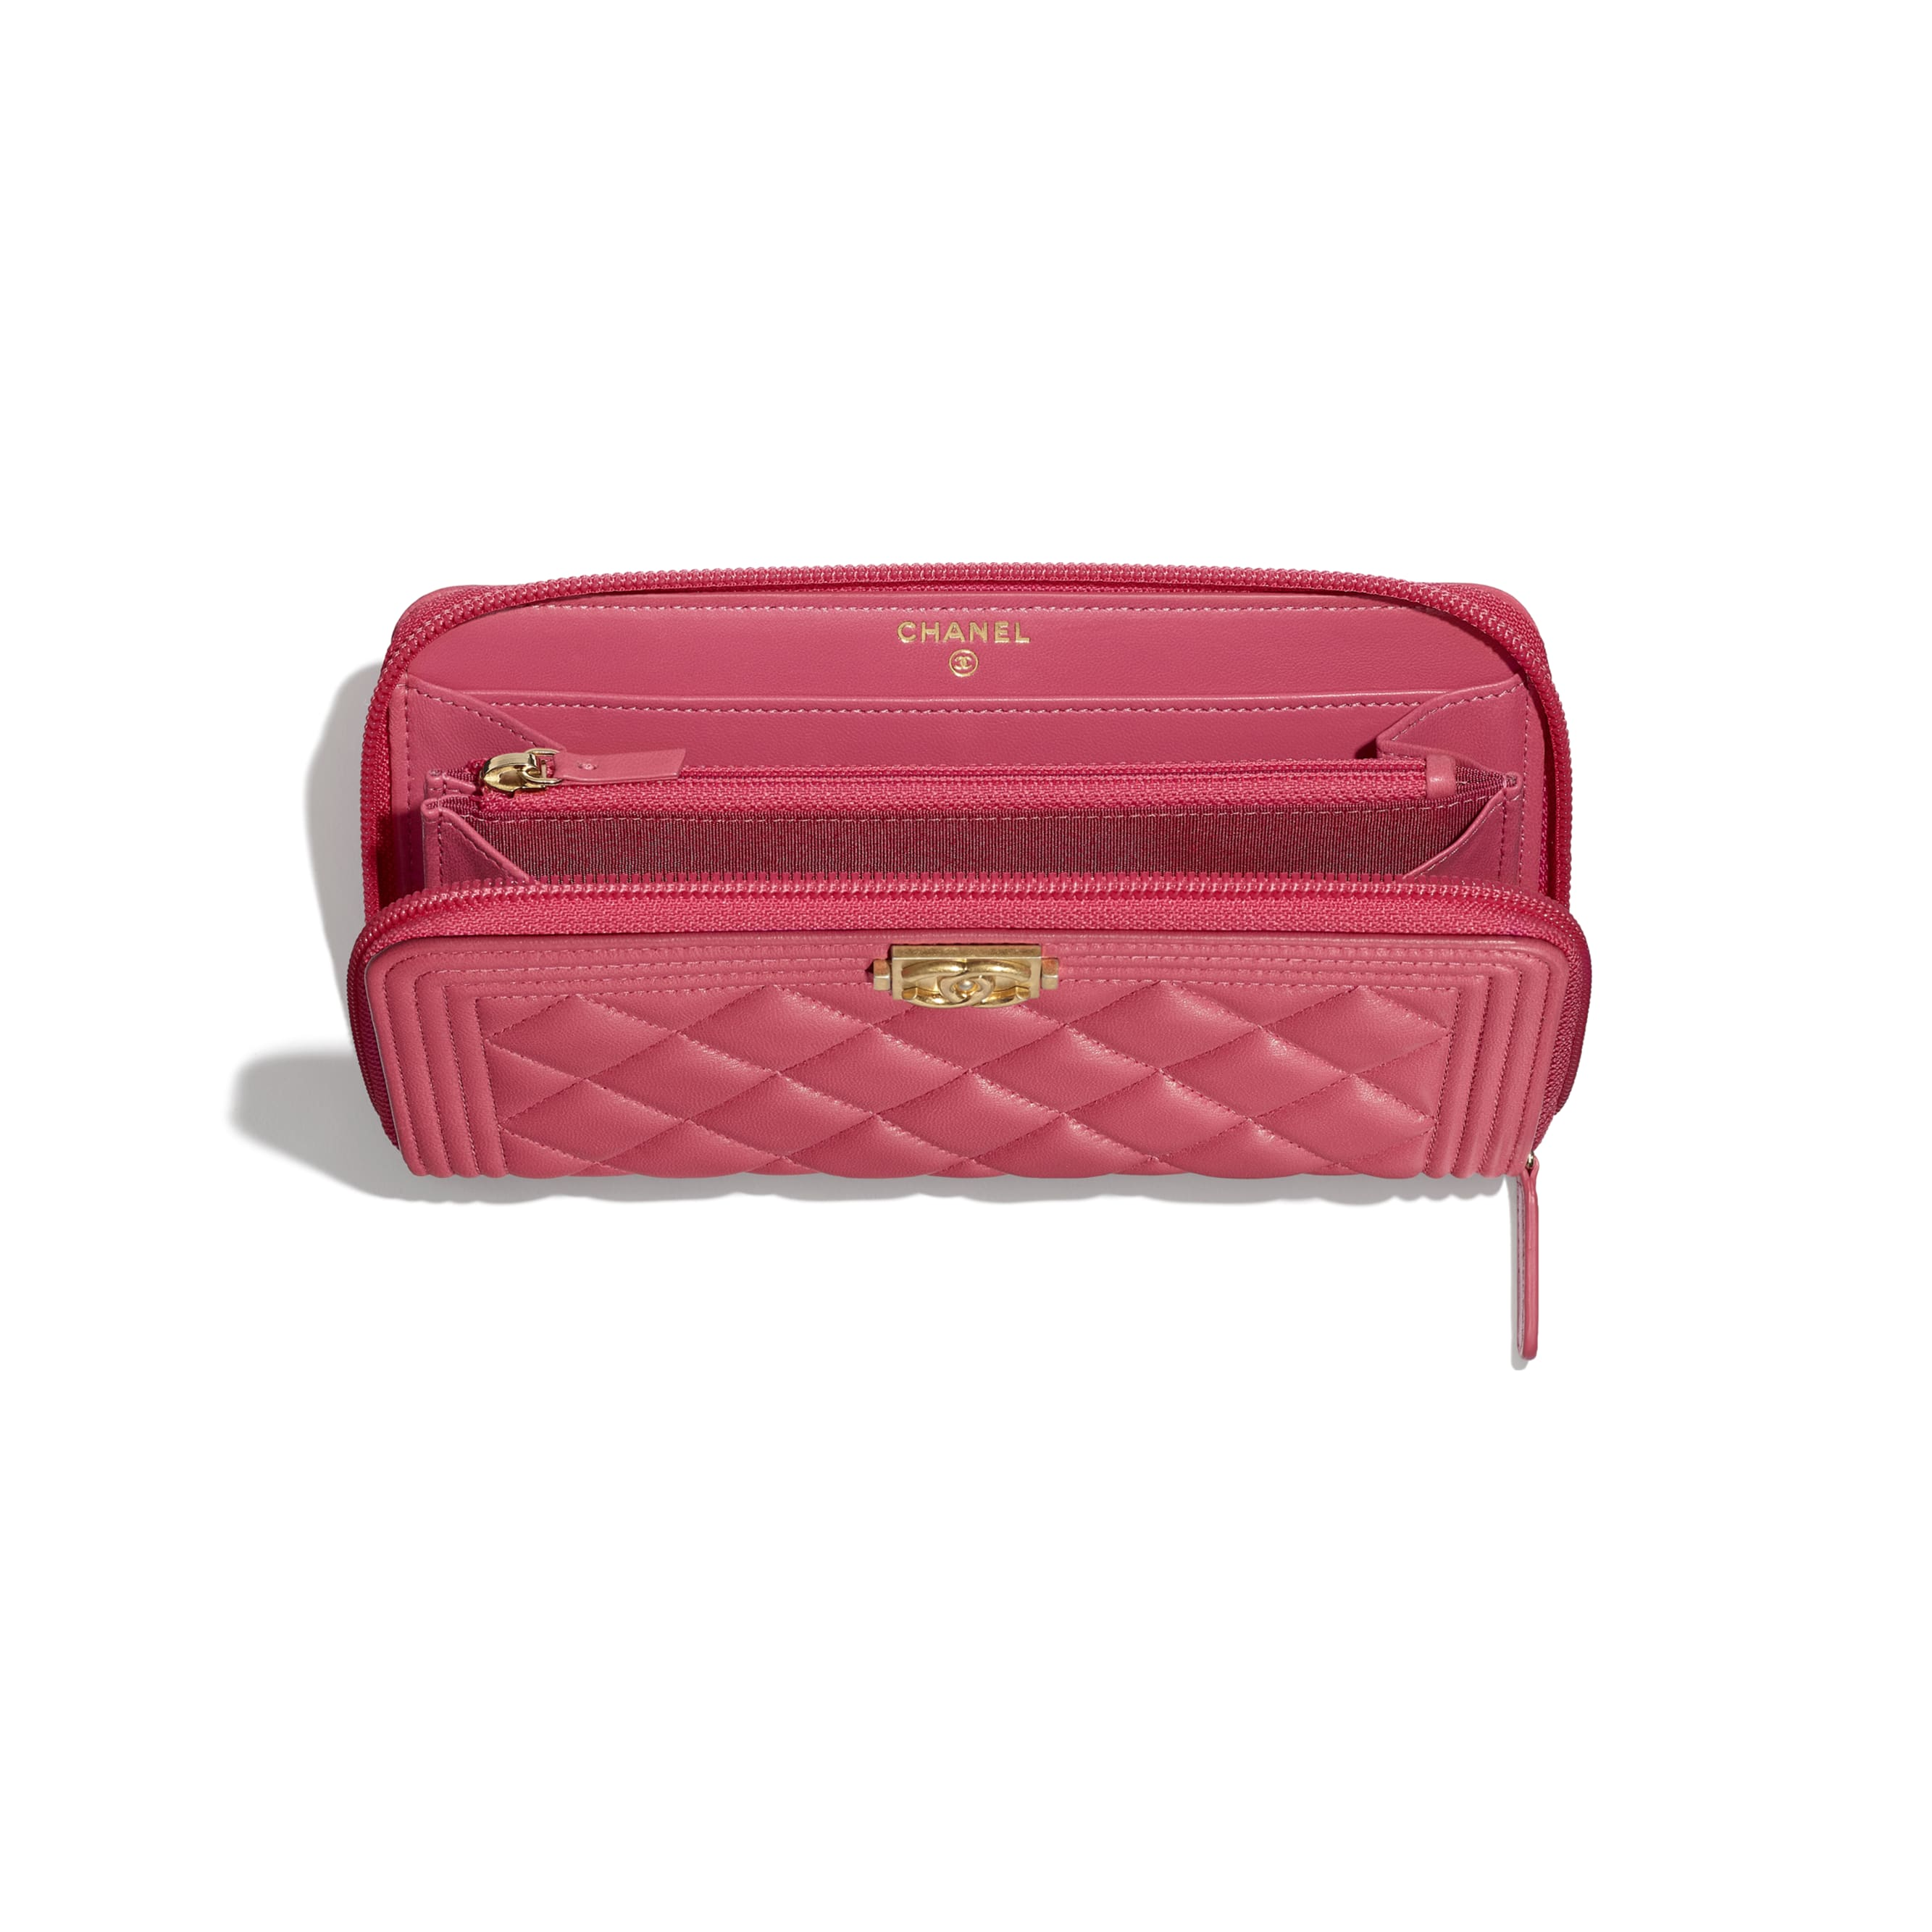 BOY CHANEL Long Zipped Wallet - Pink - Lambskin & Gold-Tone Metal - CHANEL - Other view - see standard sized version